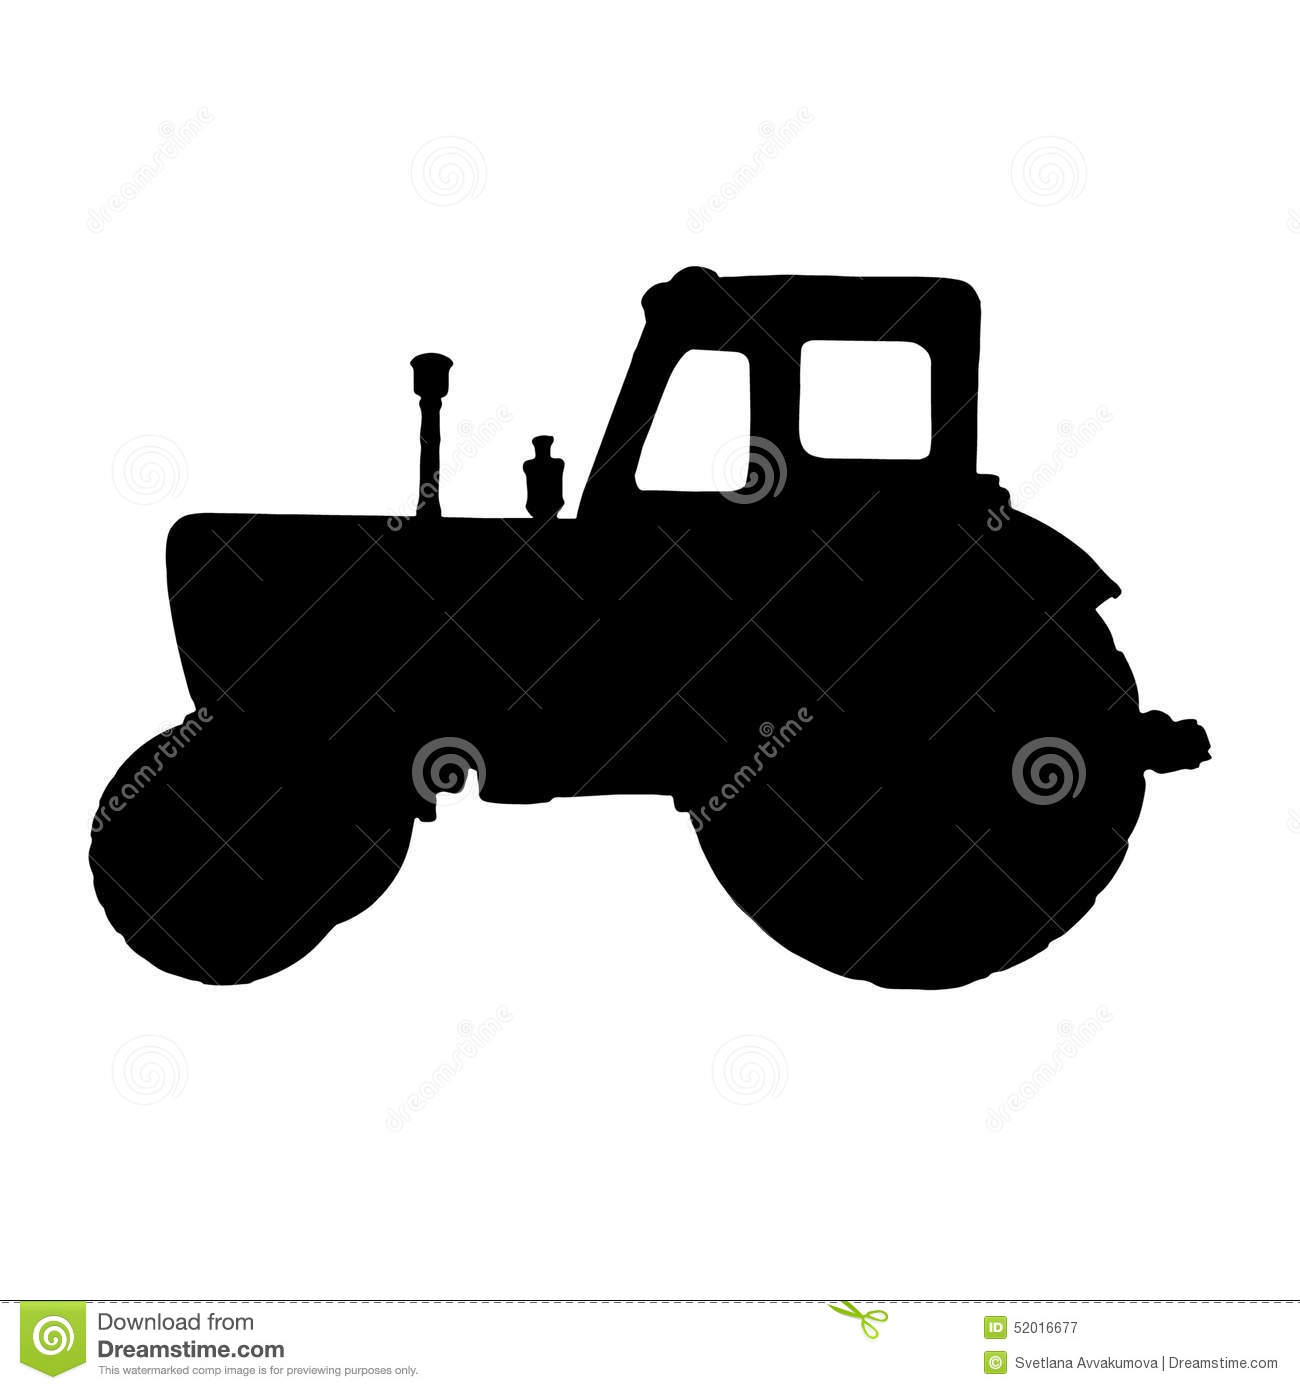 Silhouette Tractor Black White Background on Z Car Symbol